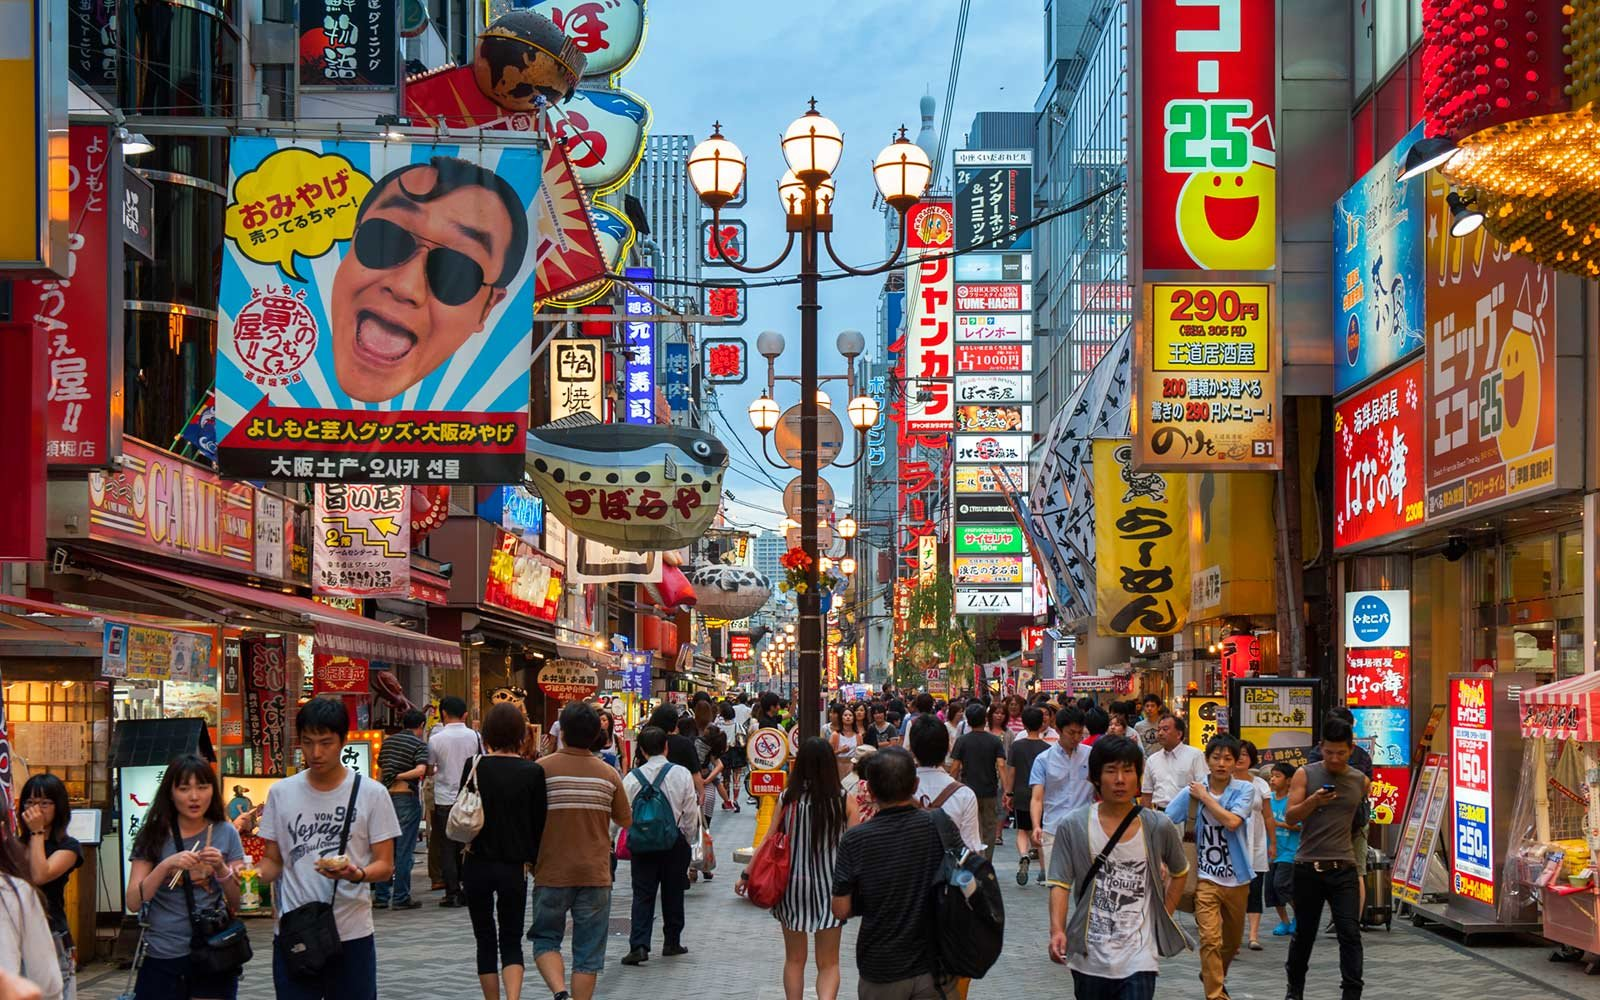 dotonbori-district-osaka-japan-LGCITY0406.jpg